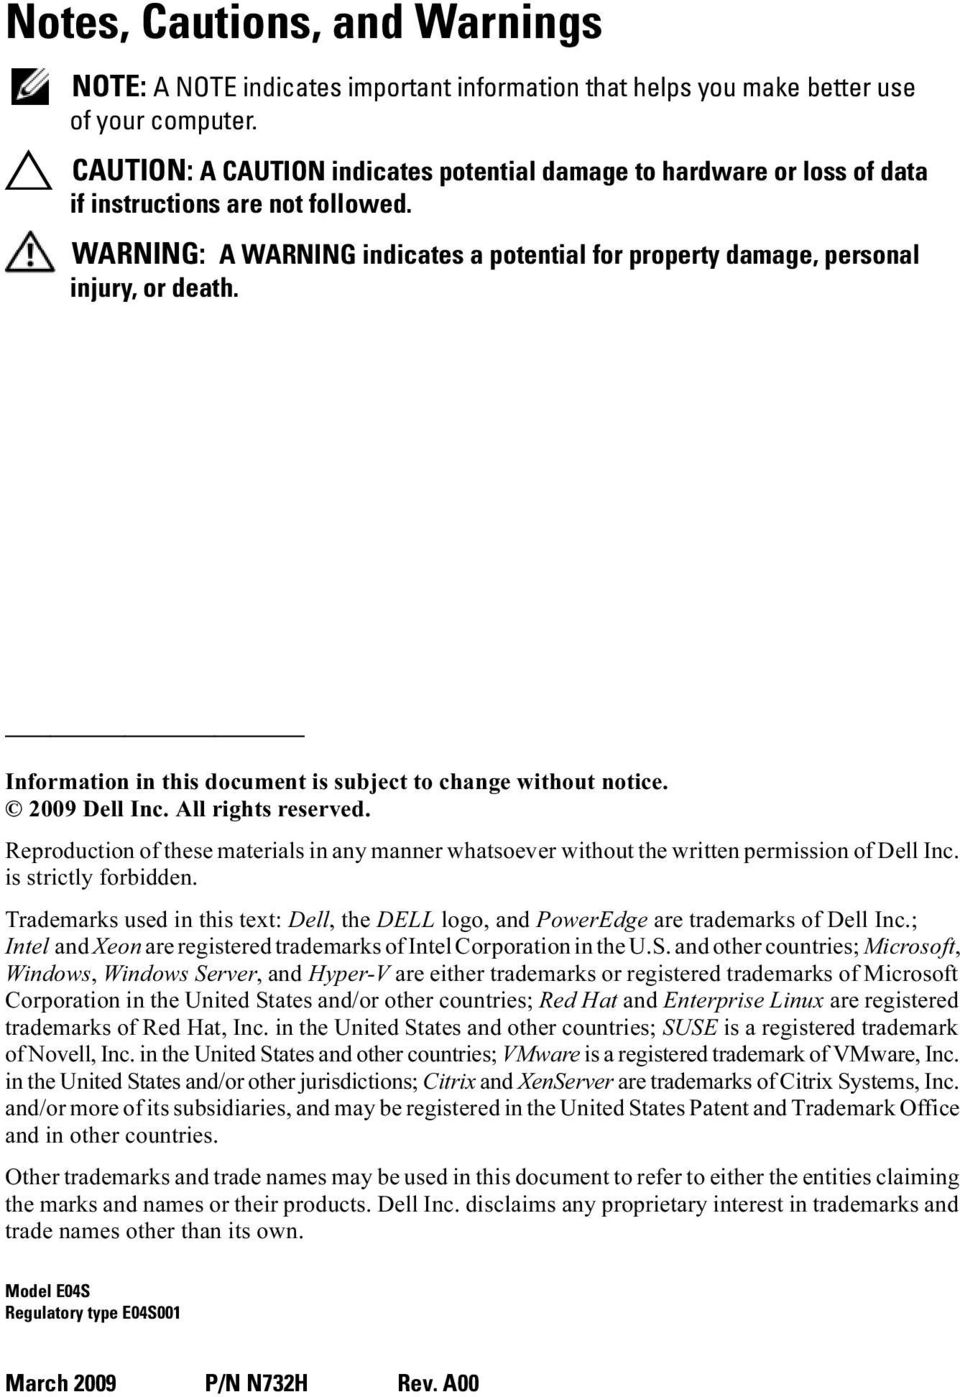 Information in this document is subject to change without notice. 2009 Dell Inc. All rights reserved.